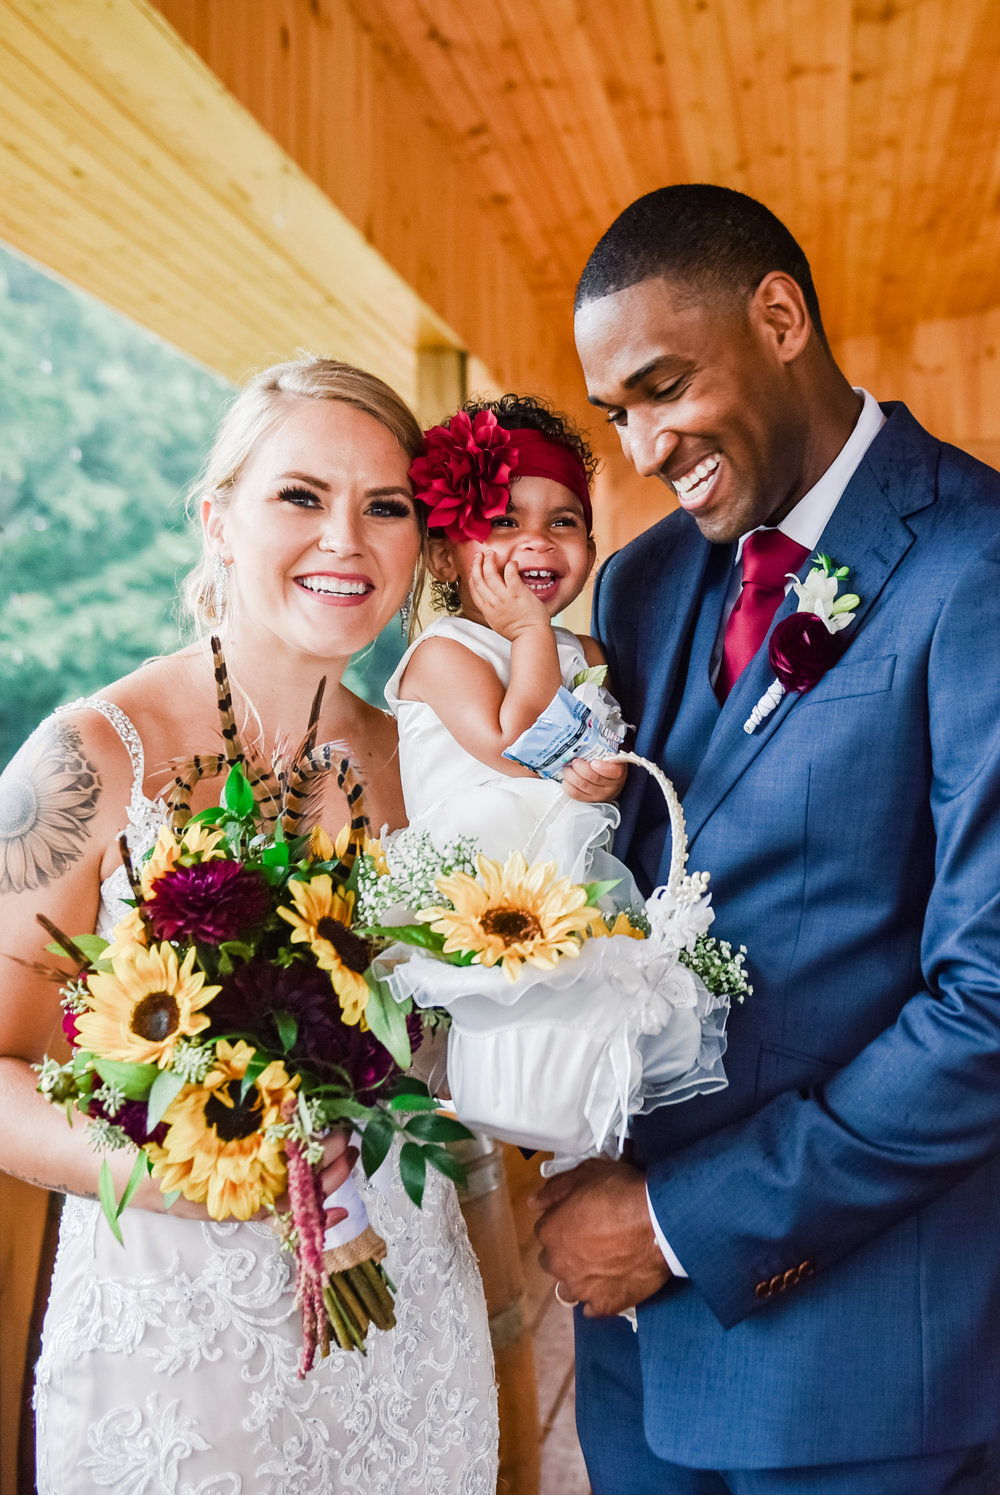 Cobblestone_Wedding_Barn_Rochester_Wedding_JILL_STUDIO_Rochester_NY_Photographer_DSC_7058.jpg